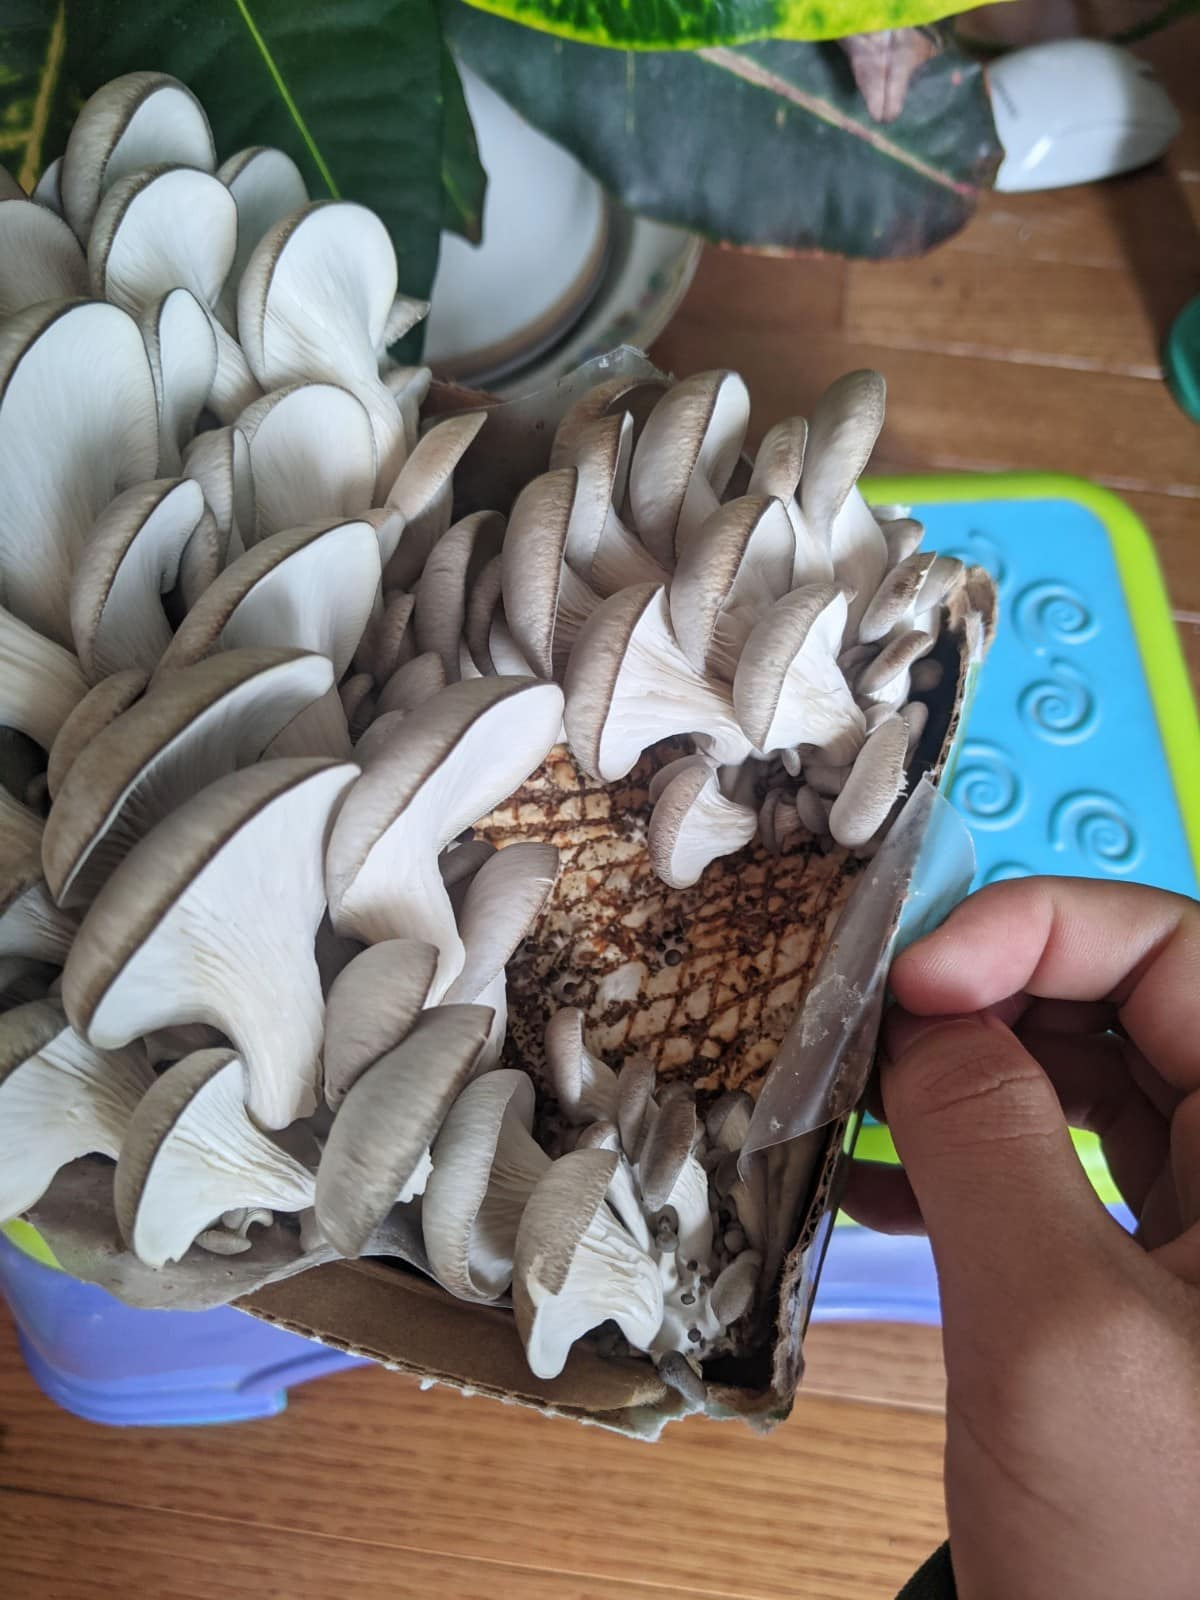 Day 6 of the Back to the Roots oyster mushroom kit